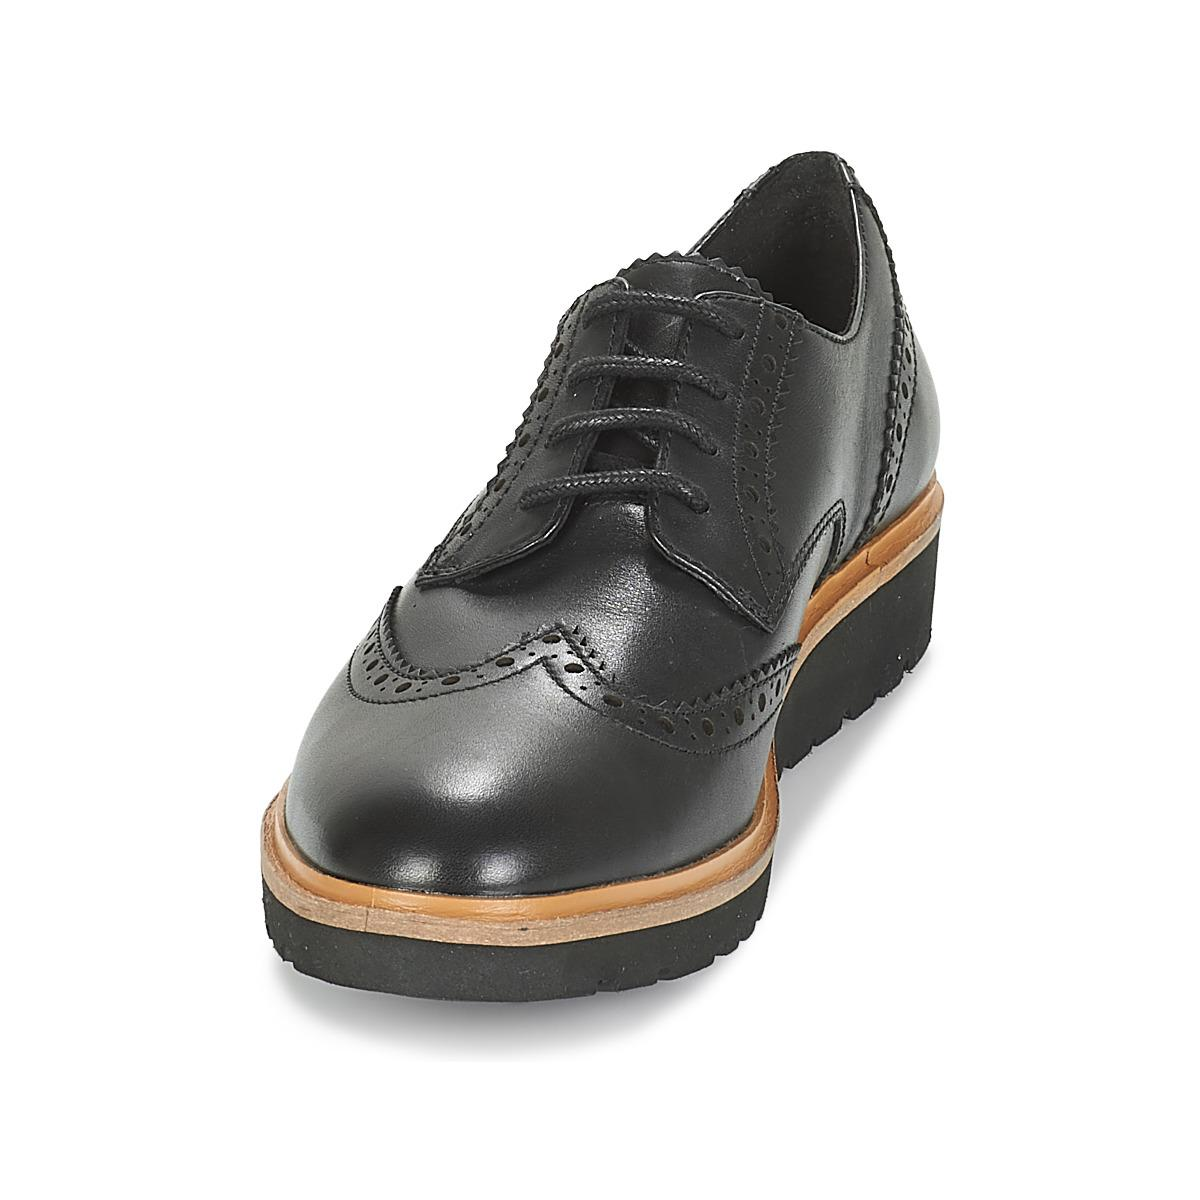 558c62d4368a Timberland Ellis Street Oxford Women s Casual Shoes In Black in ...